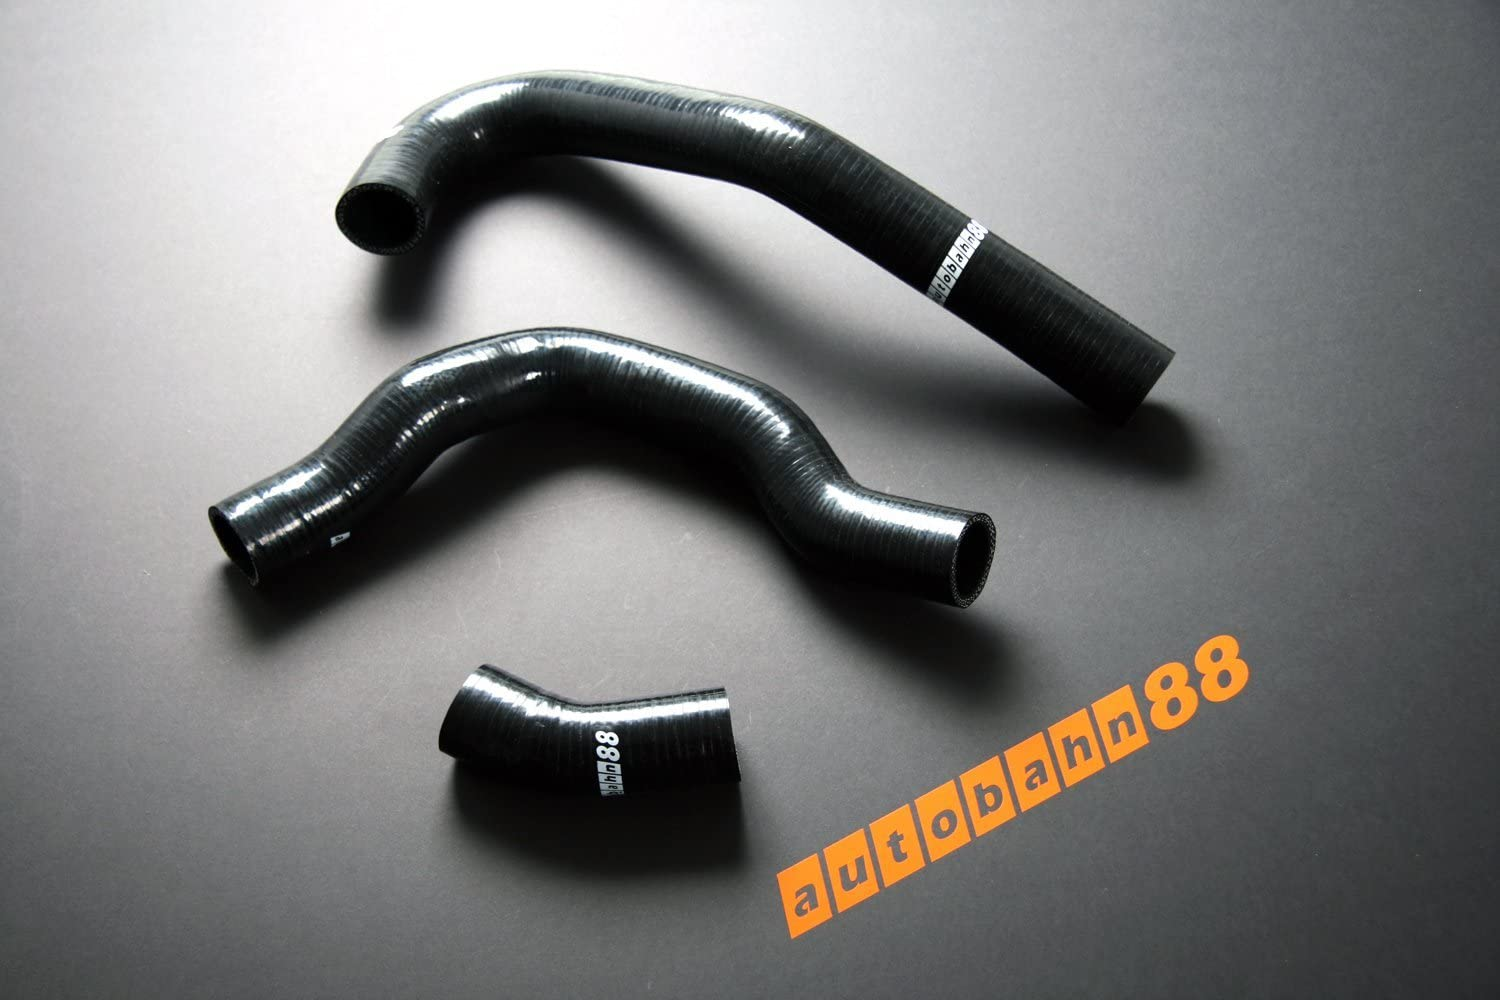 Black -without Clamp Set Autobahn88 Heater Silicone Hose Kit fits for 1989-1993 Nissan Skyline GTS R32 HCR32 HNR32 RB20DET